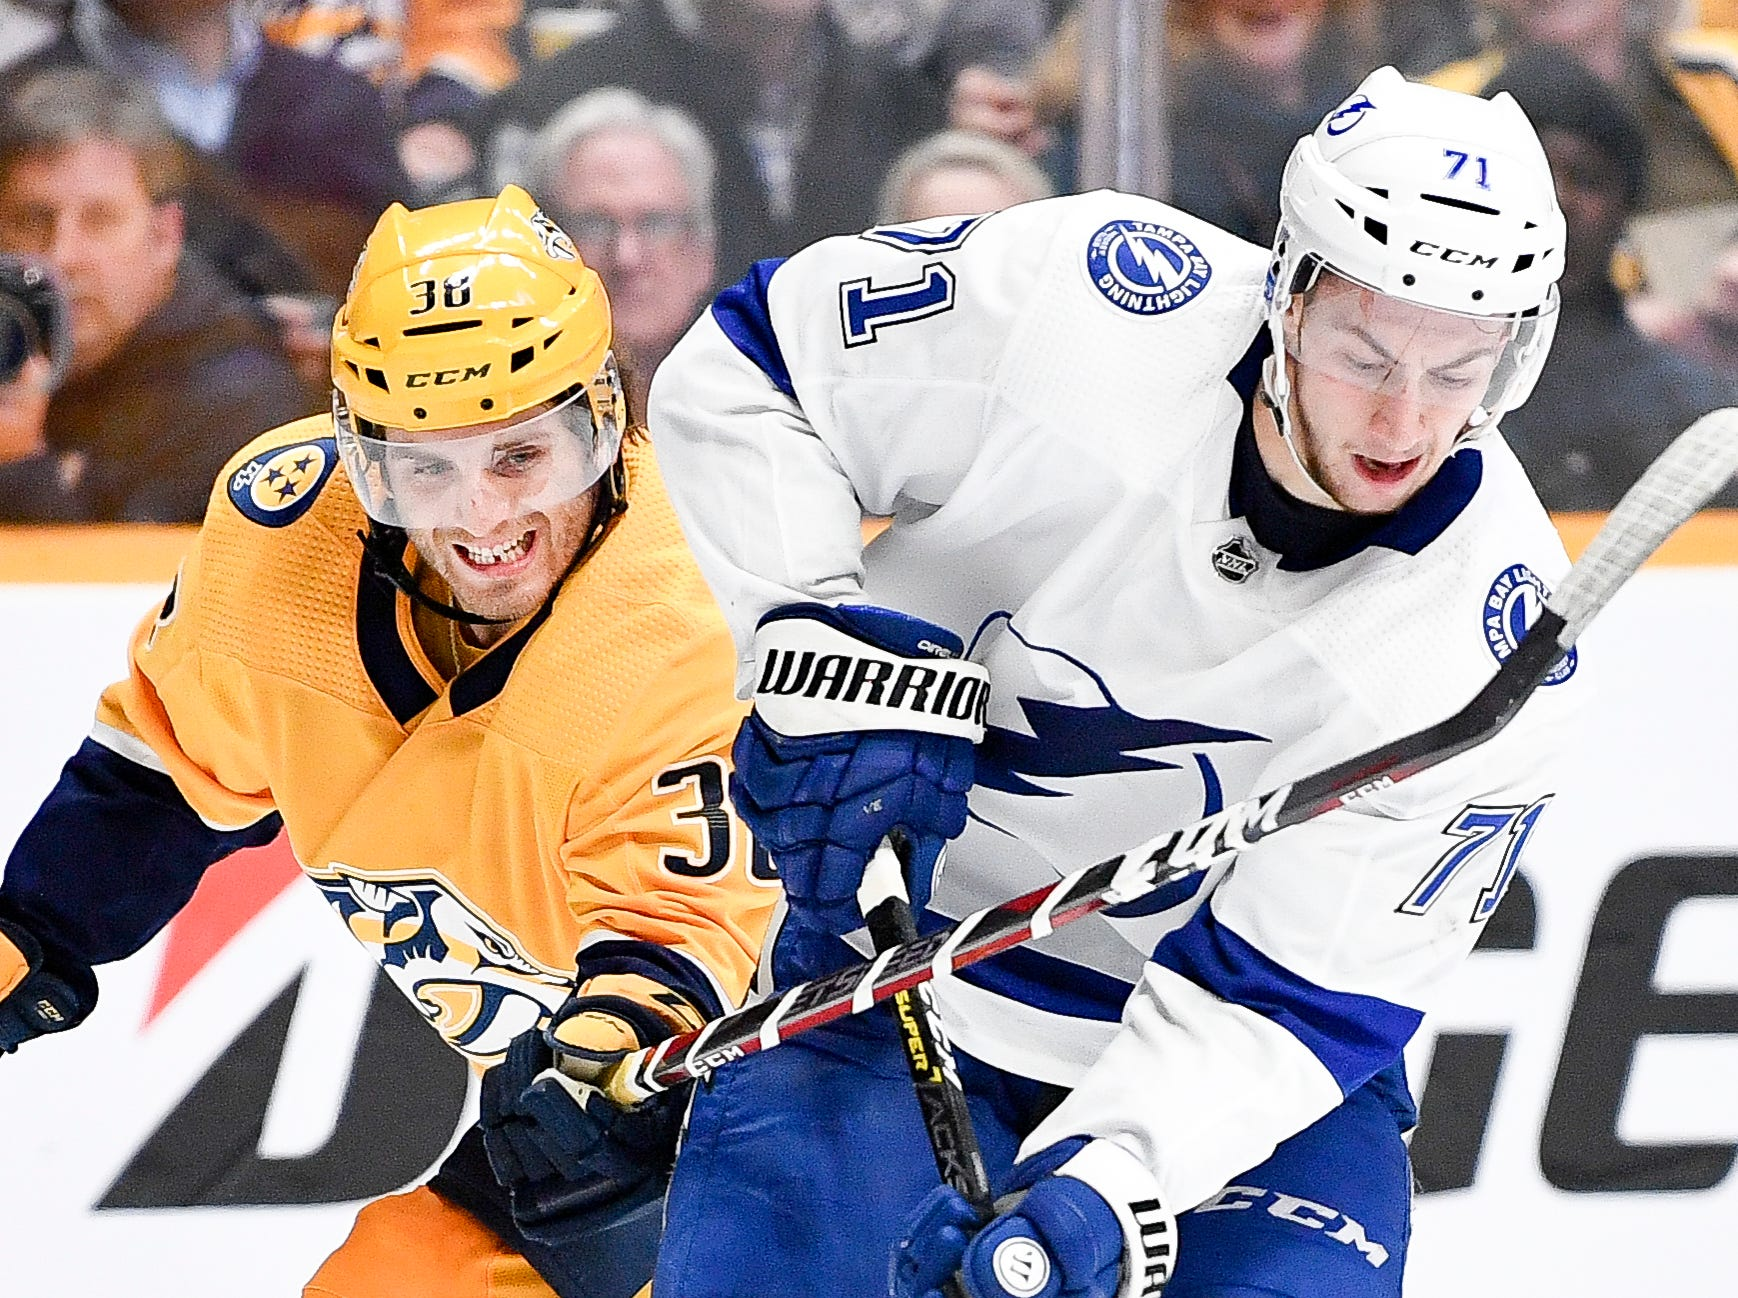 Nashville Predators right wing Ryan Hartman (38) battles with Tampa Bay Lightning center Anthony Cirelli (71) during the second period at Bridgestone Arena in Nashville, Tenn., Monday, Nov. 19, 2018.